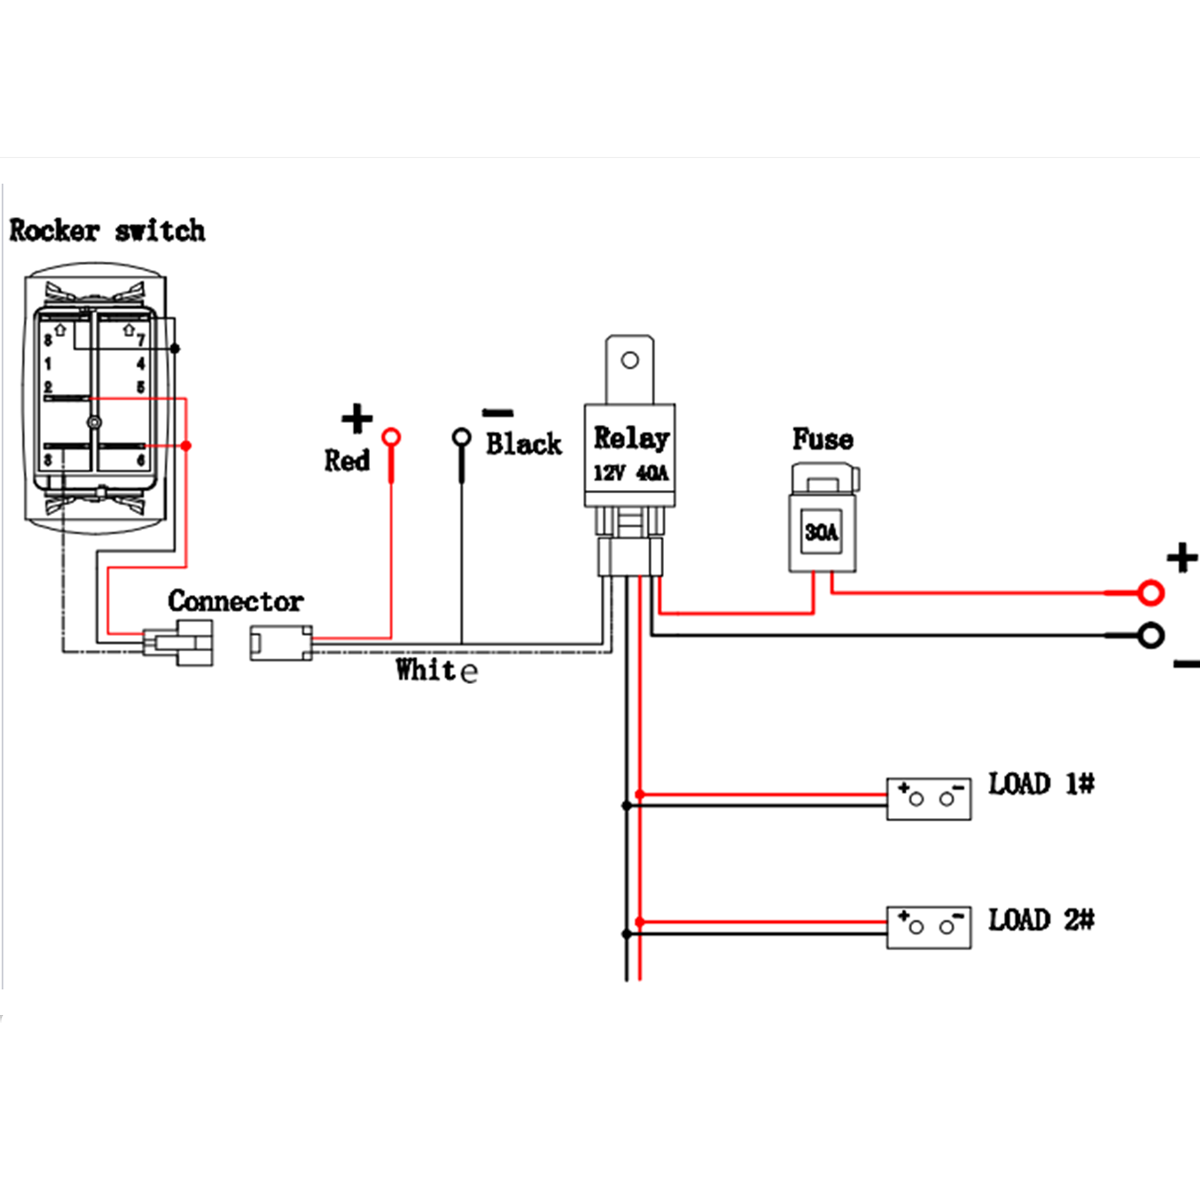 Carling Technologies Rocker Switch Wiring Diagram from schematron.org